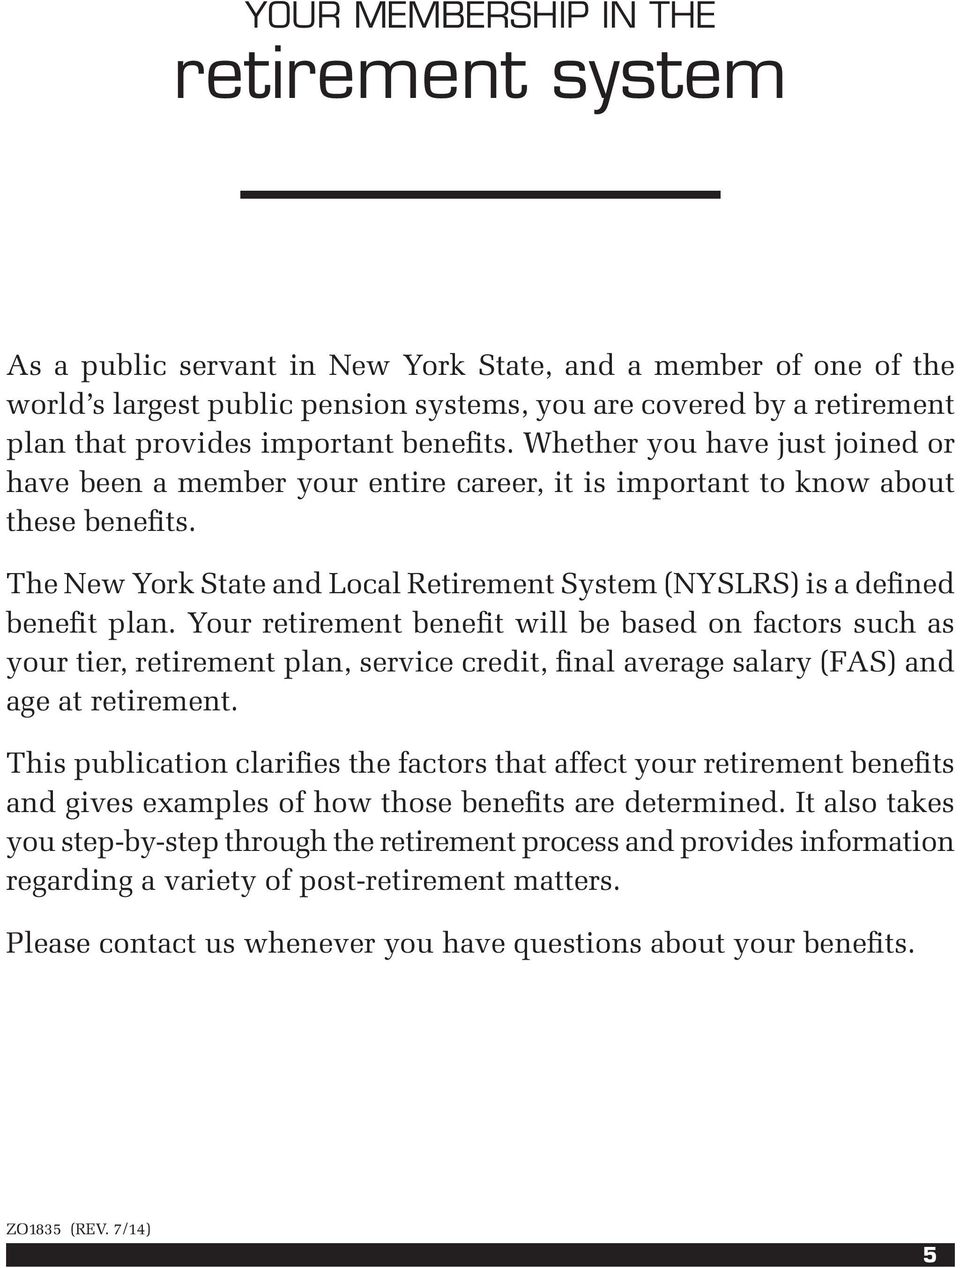 The New York State and Local Retirement System (NYSLRS) is a defined benefit plan.